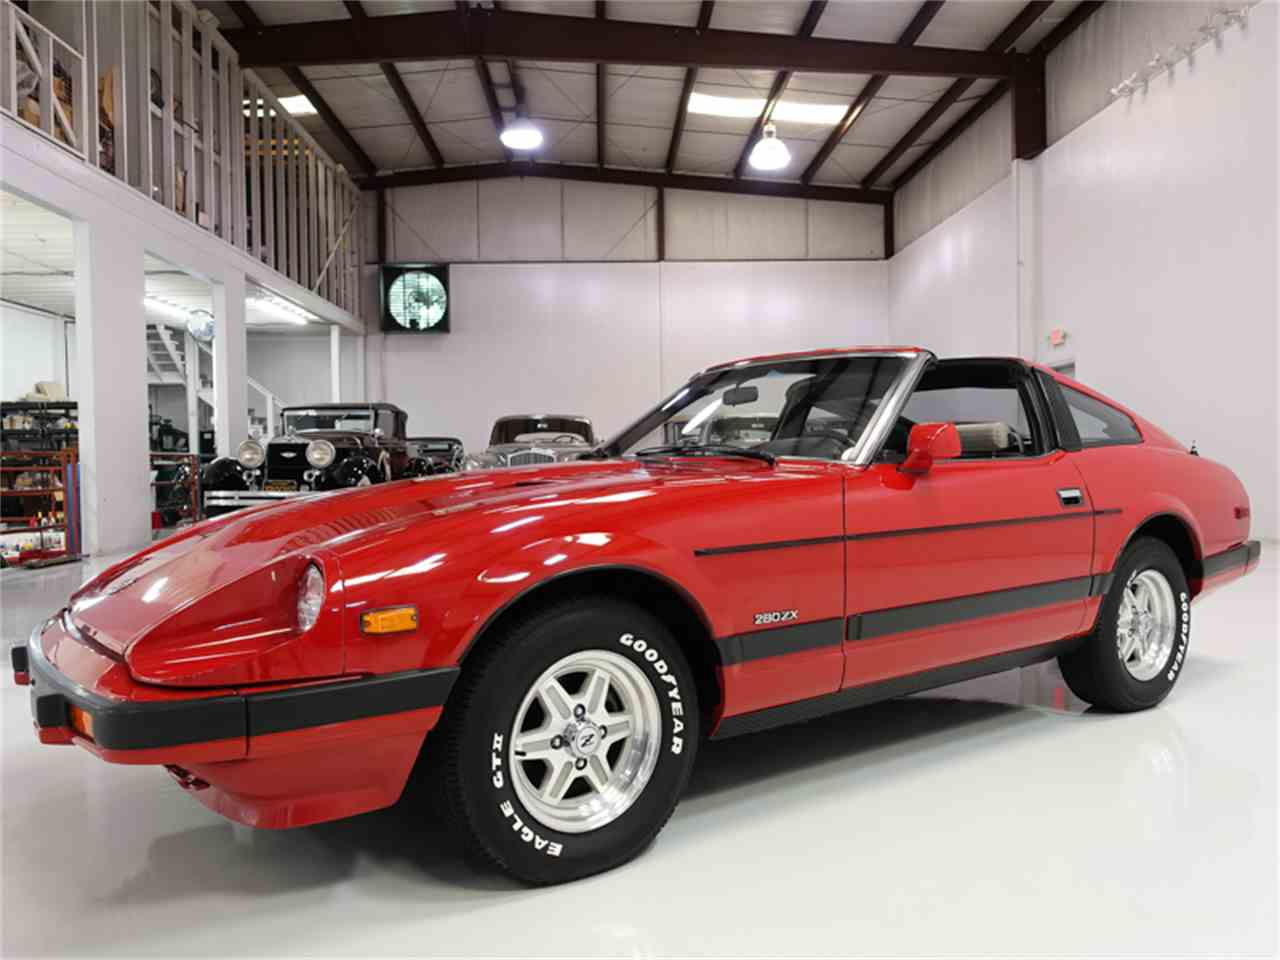 1982 datsun 280zx for sale cc 999424. Black Bedroom Furniture Sets. Home Design Ideas